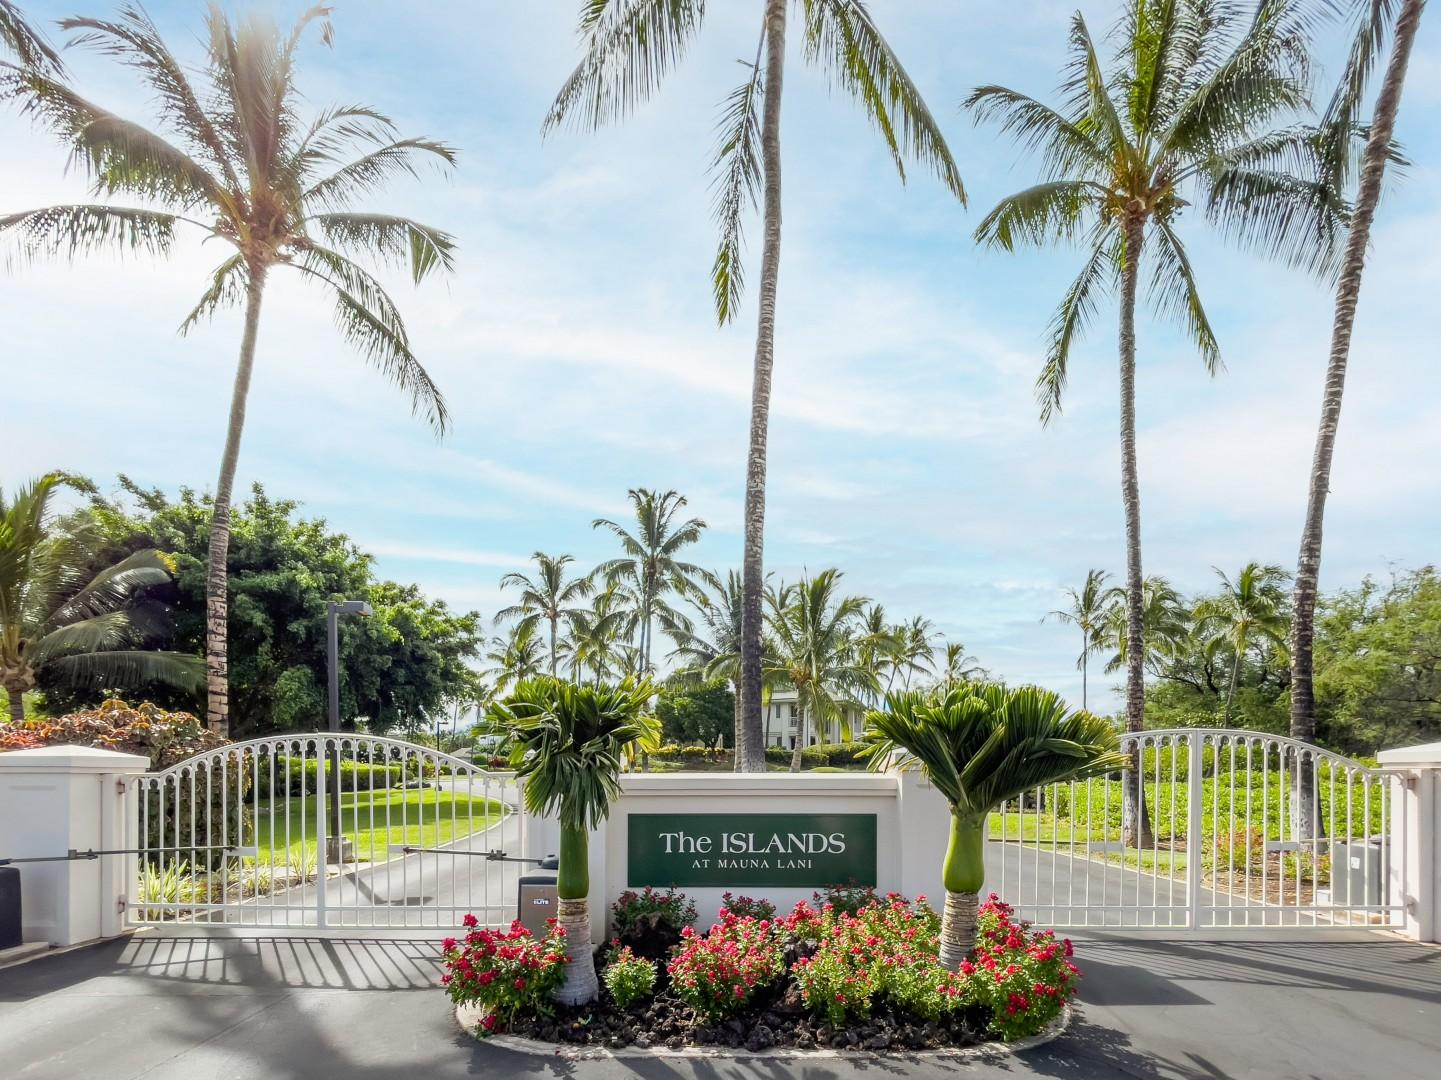 Gated Entrance to The Islands Private Community